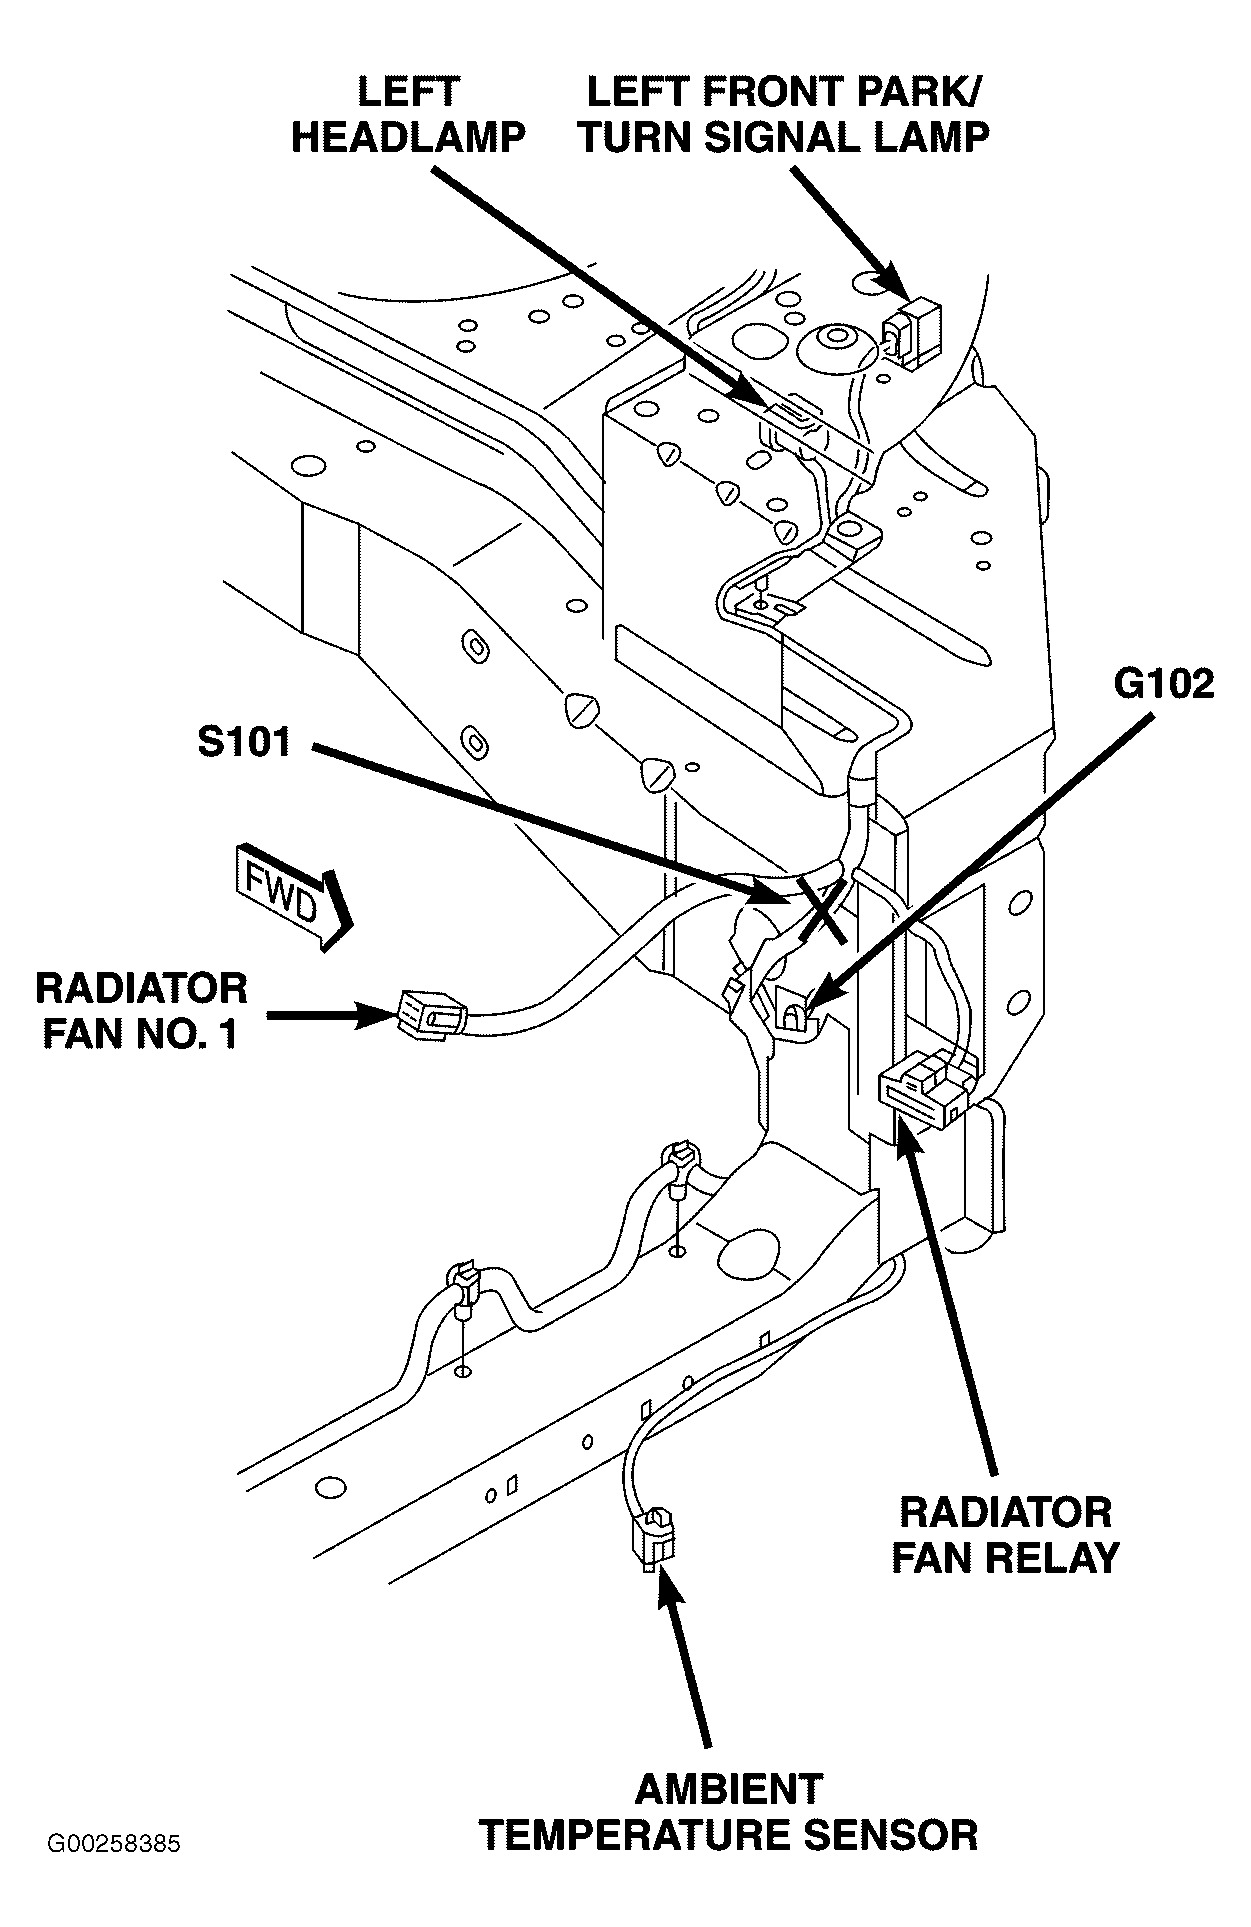 2000 dodge caravan cooling fan wiring diagram wiring library Furnace Thermostat Wiring Diagram cooling fan not working with the temperature still in the low thumb 1997 dodge caravan wiring diagram